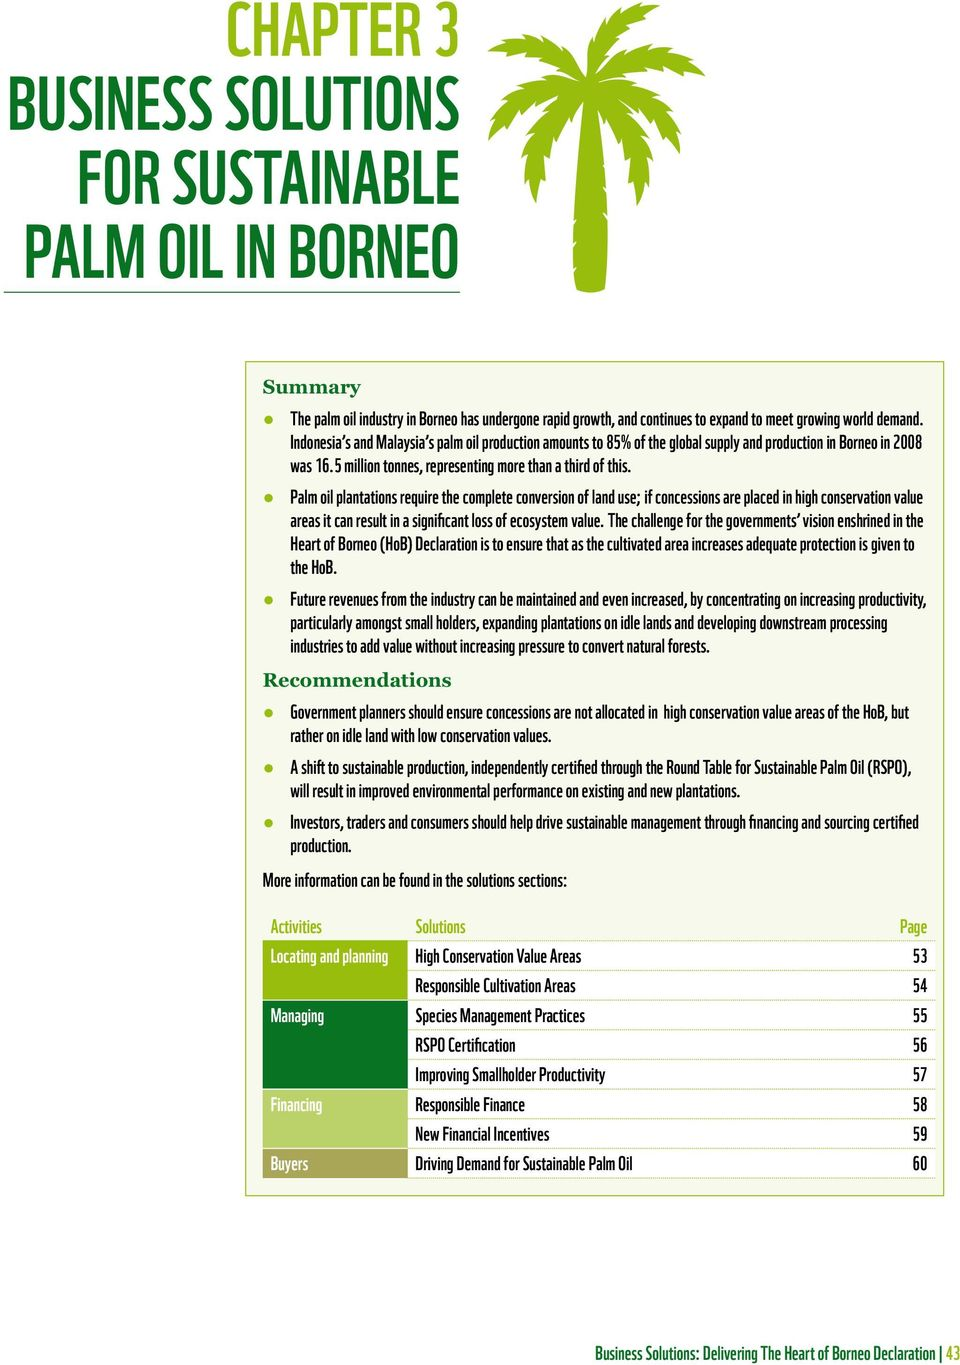 Palm oil plantations require the complete conversion of land use; if concessions are placed in high conservation value areas it can result in a significant loss of ecosystem value.